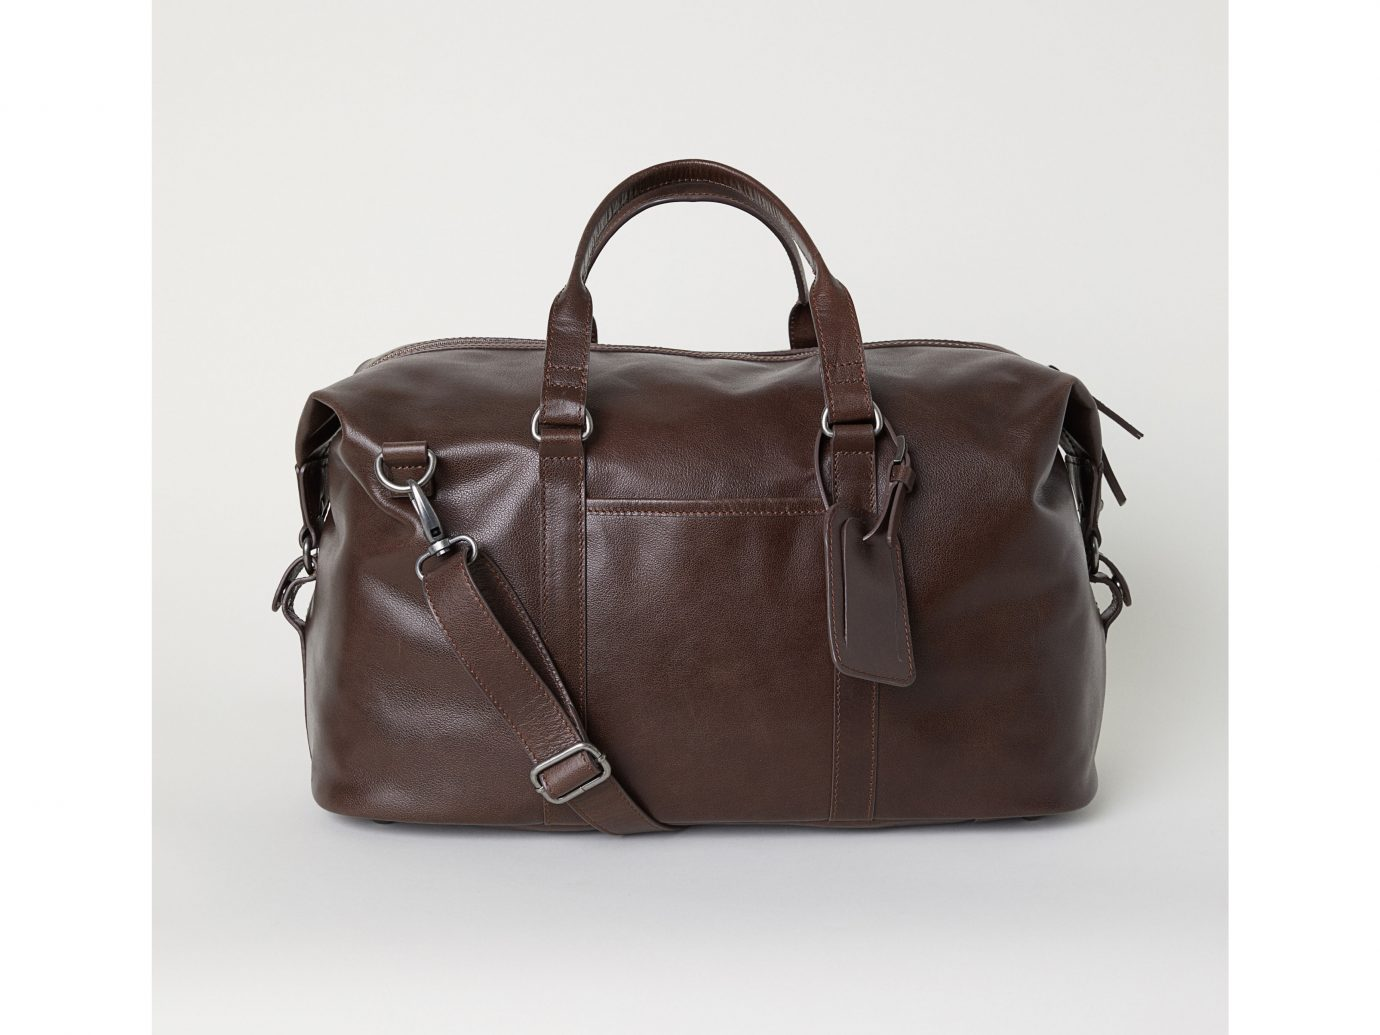 H&M Premium Quality Leather Weekend Bag